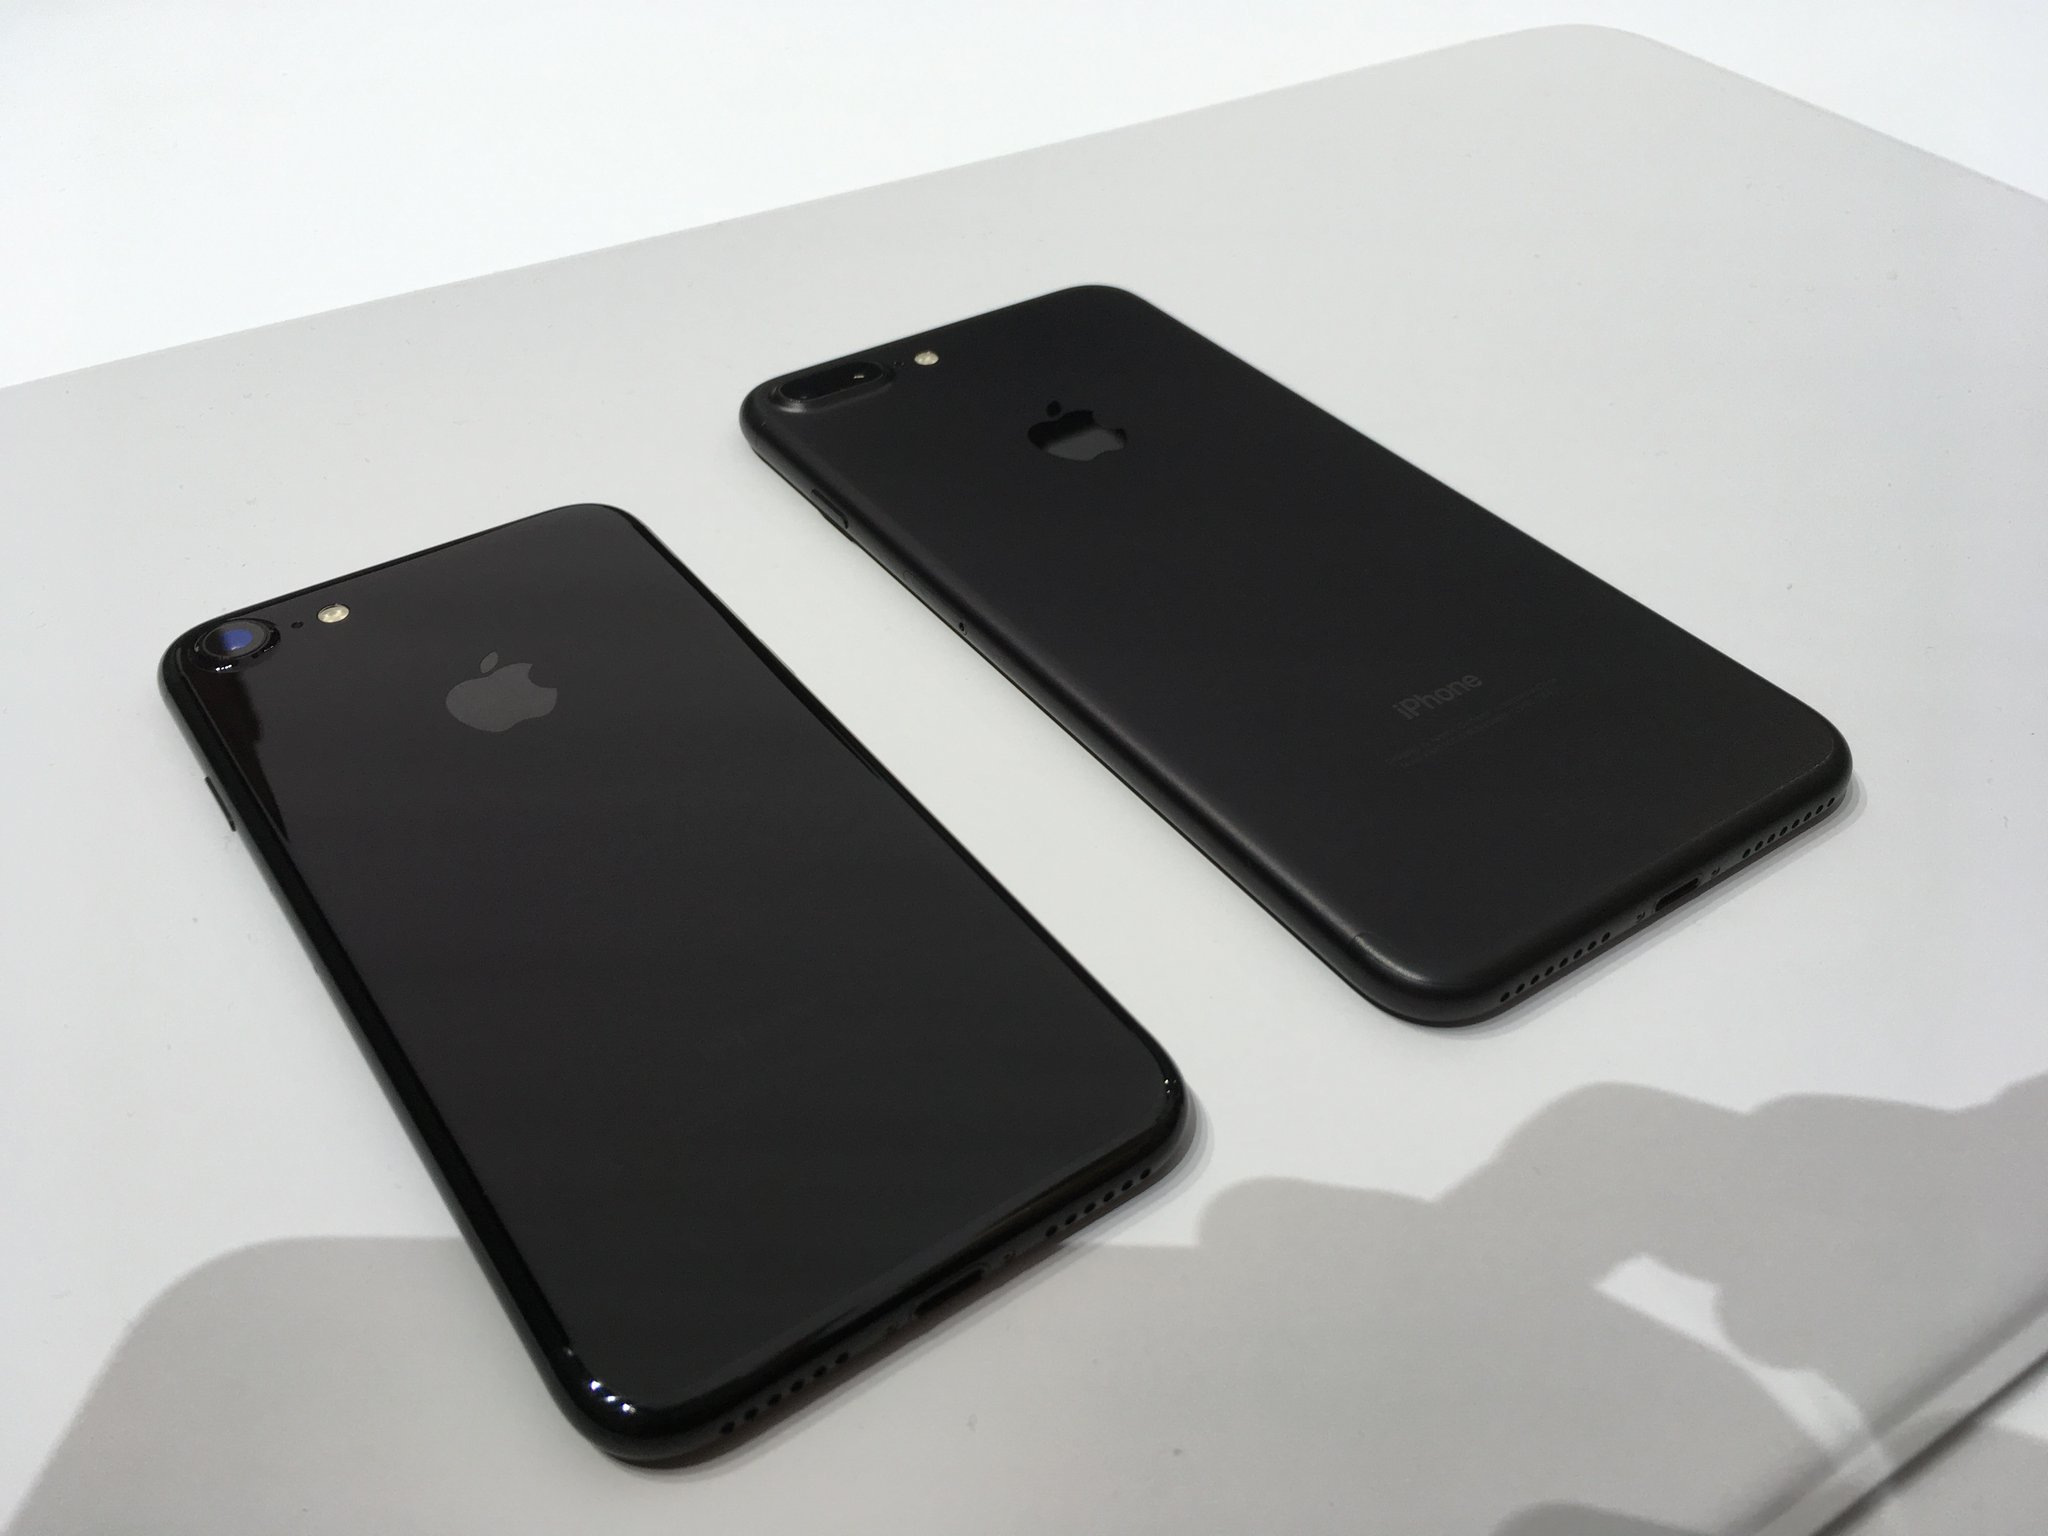 diferente iPhone 7 negru jet black mat